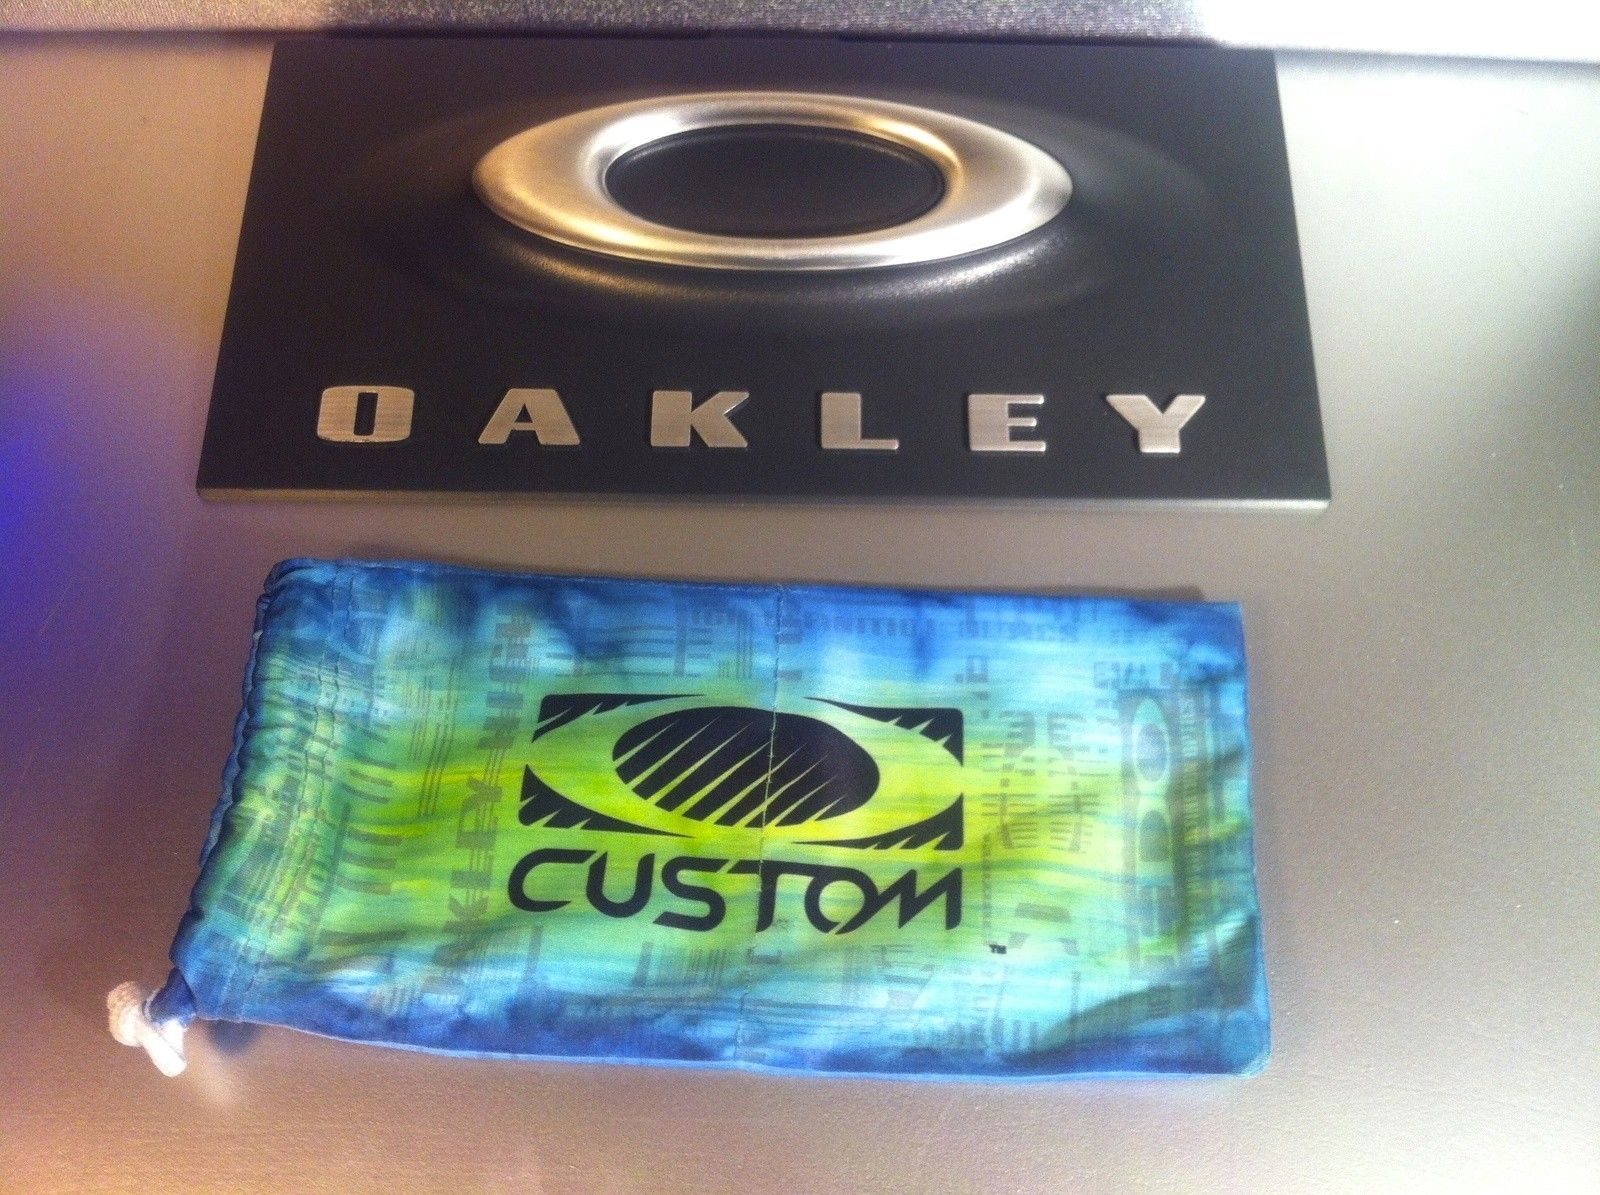 Customized cases - IMG_5909.jpg